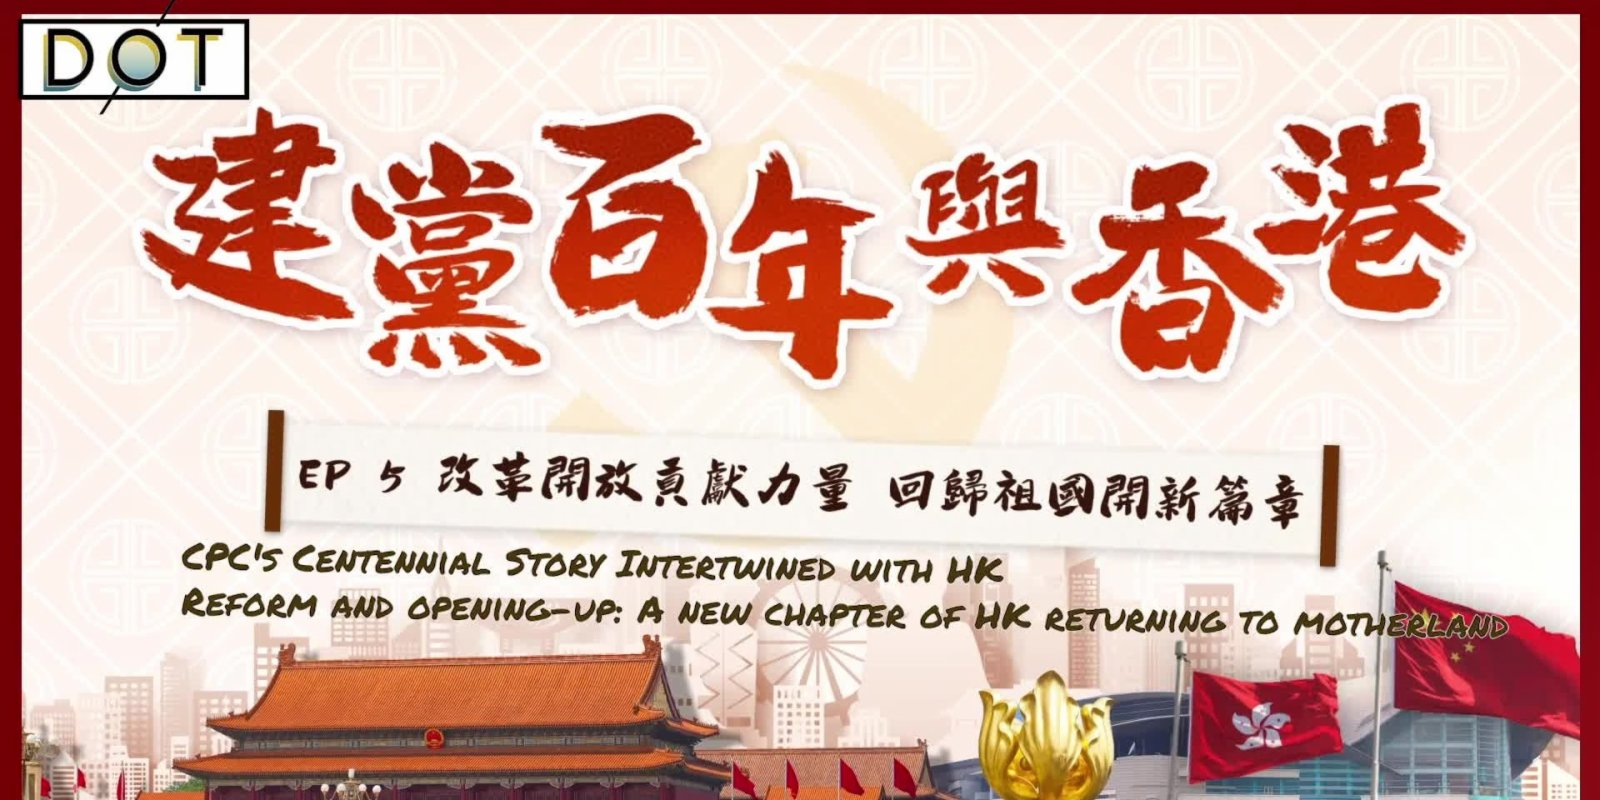 CPC's Centennial Story Intertwined with HK | Reform and opening-up: A new chapter of HK returning to motherland